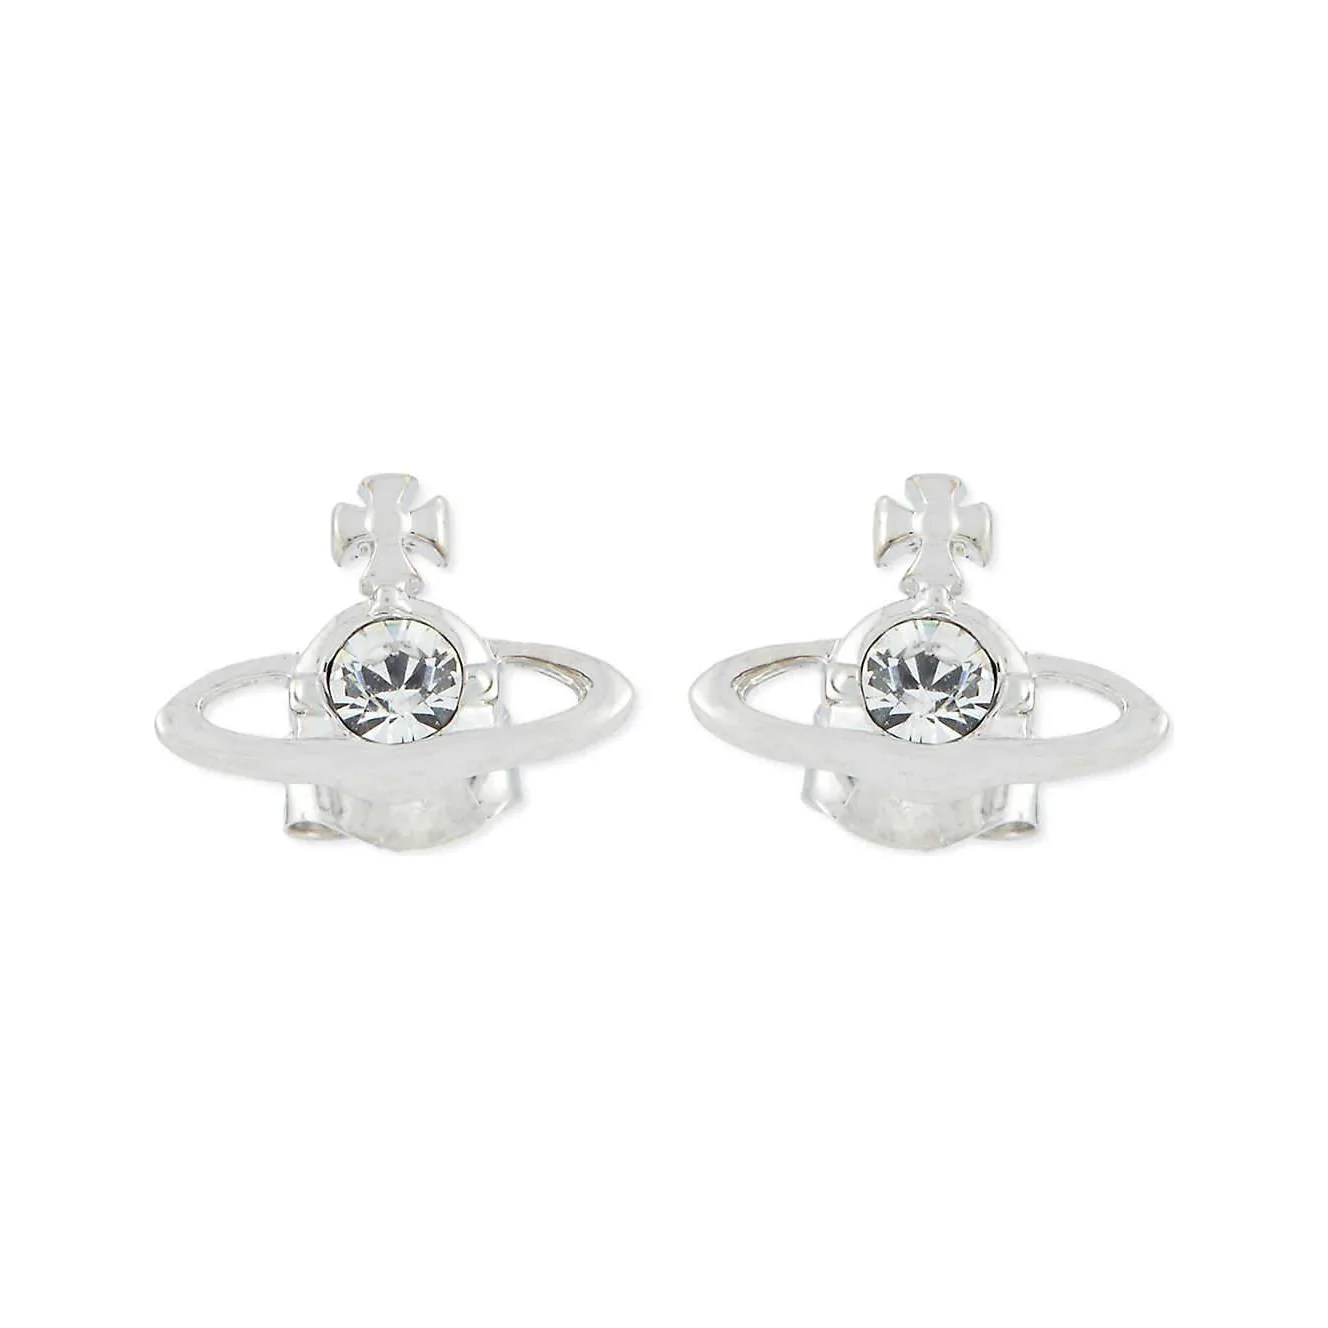 Vivienne Westwood Jewellery Nano Solitaire Earrings Rhodium Crystal Agathaboutiqueltd